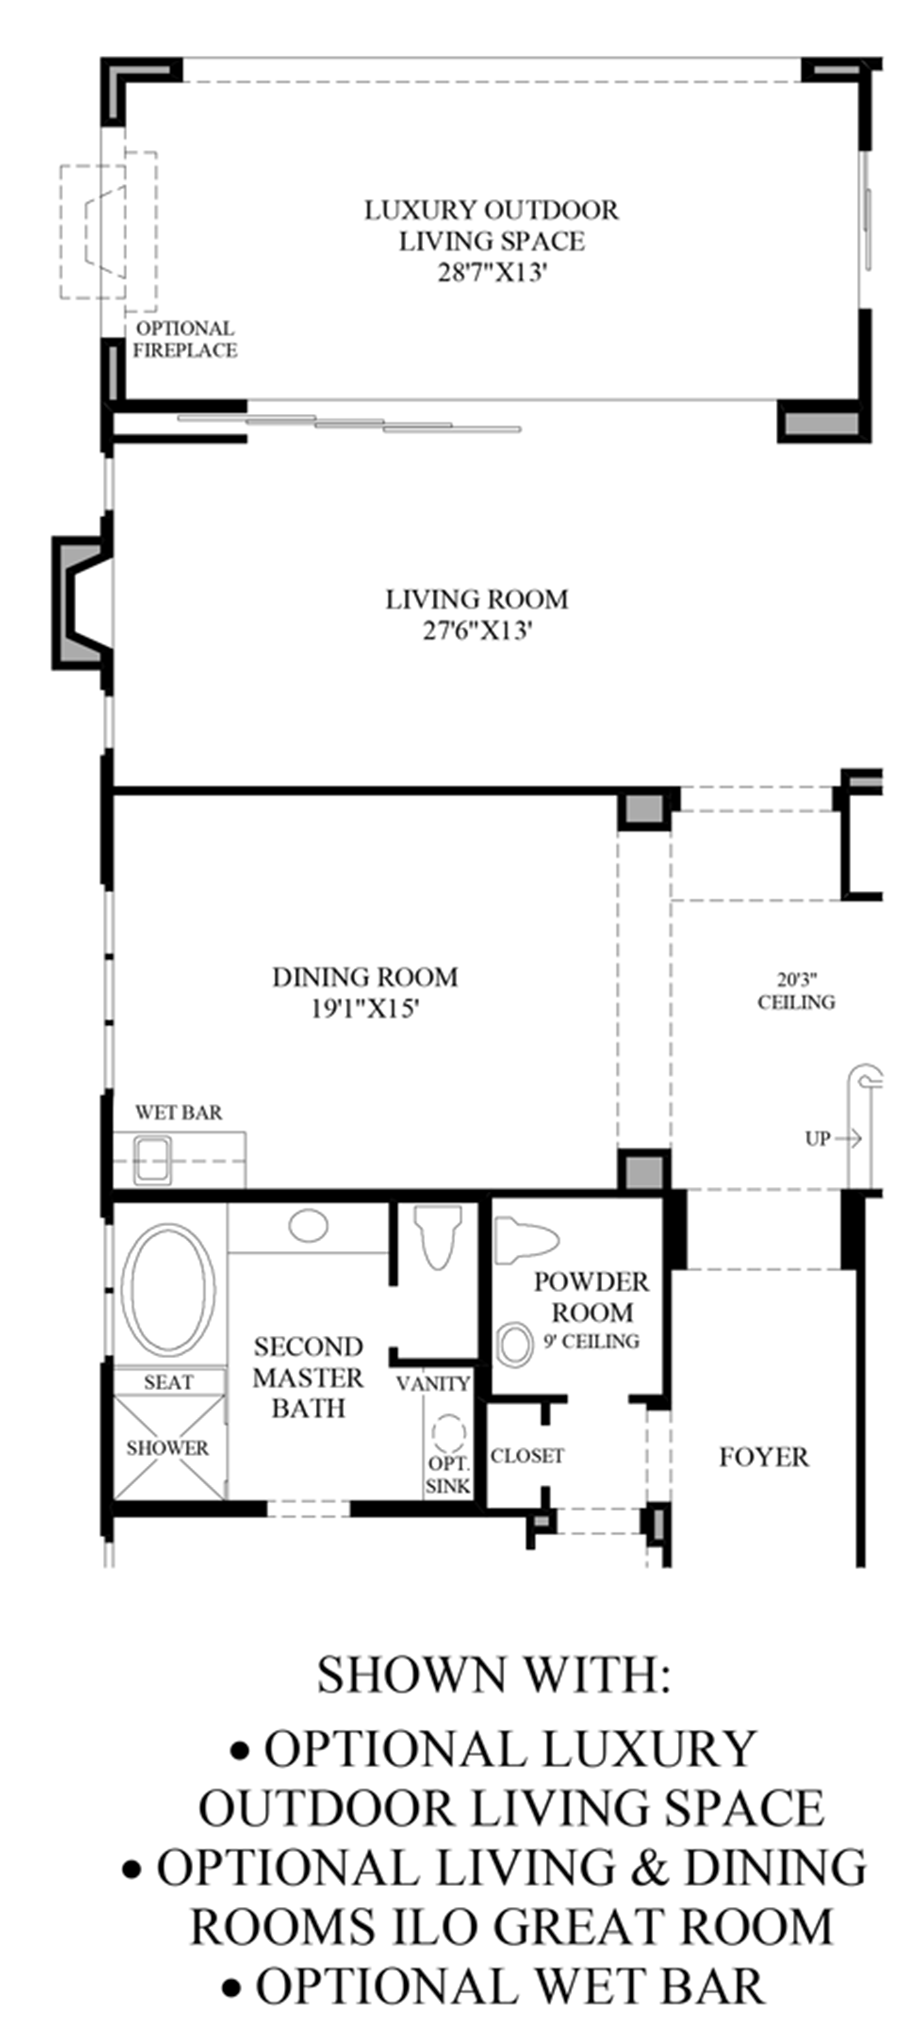 Optional Luxury Outdoor Living Space, Living U0026 Dining Rooms ILO Great Room  And Wet Bar. 1st Floor Floor Plan